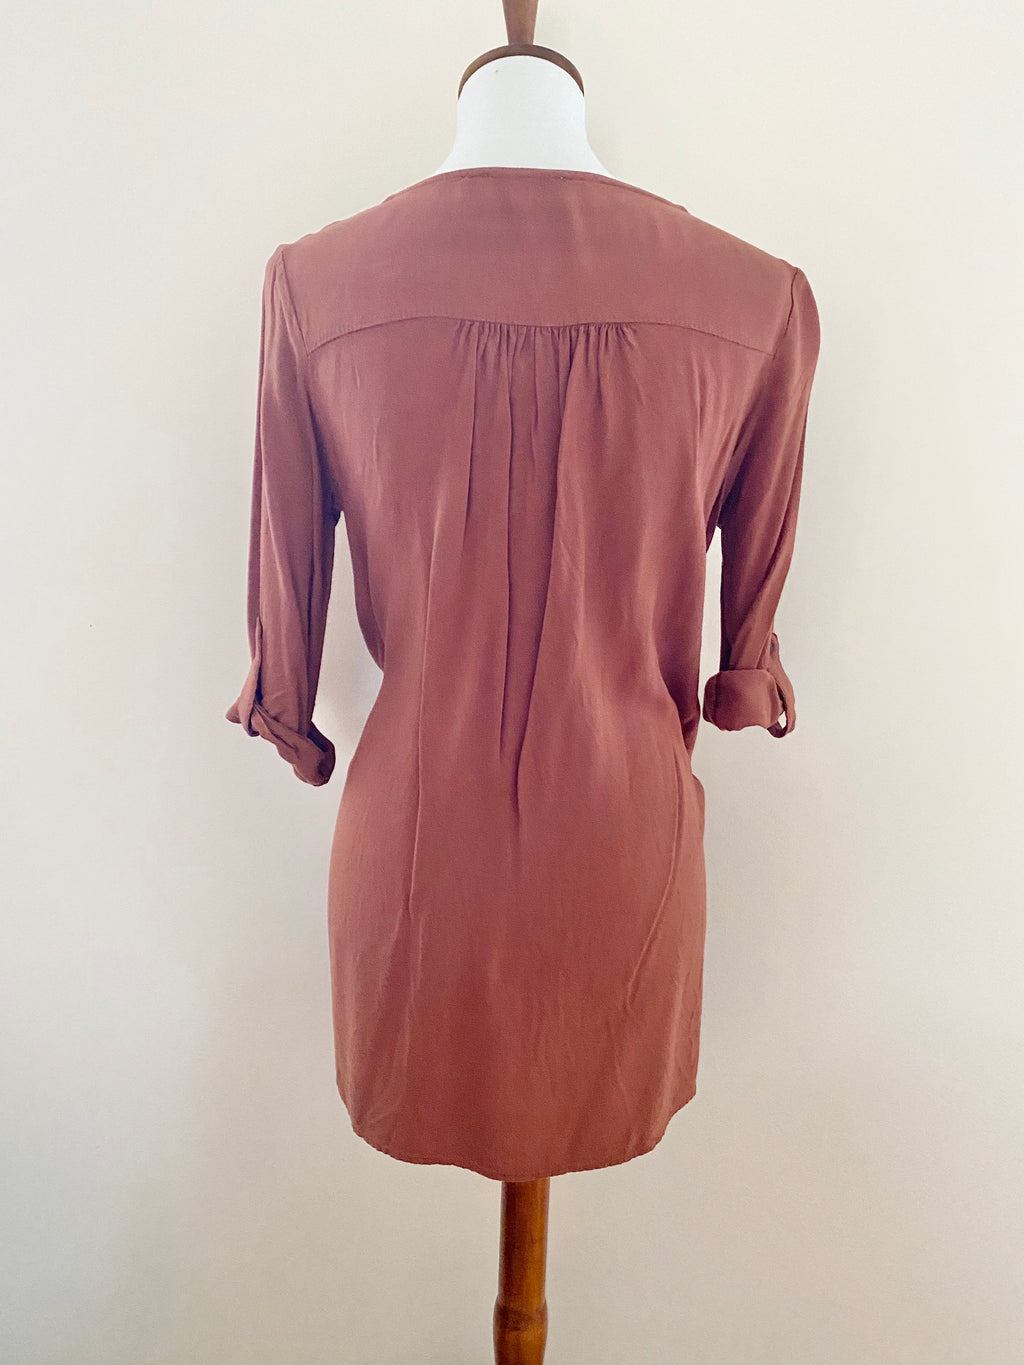 Rust Dress w/ Pockets & Roll-Up Sleeves